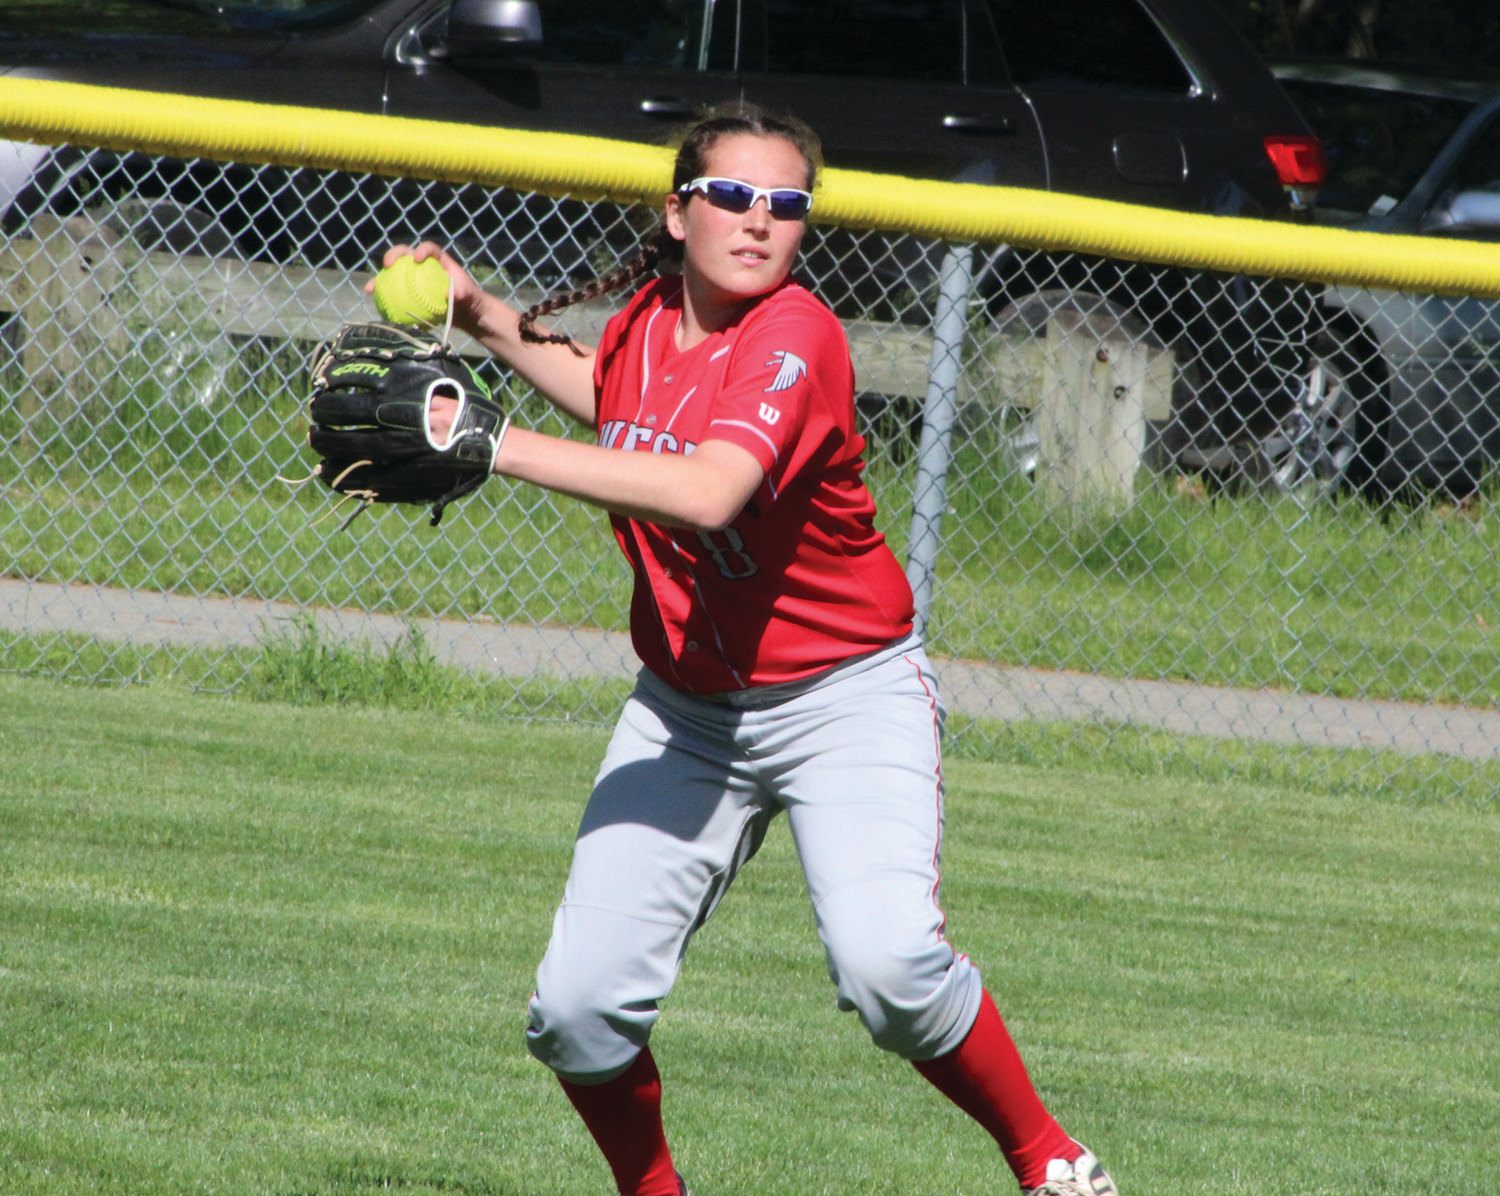 PLAYING THE FIELD: Cranston West's Caitlin O'Brien makes a play in the outfield against Pilgrim.